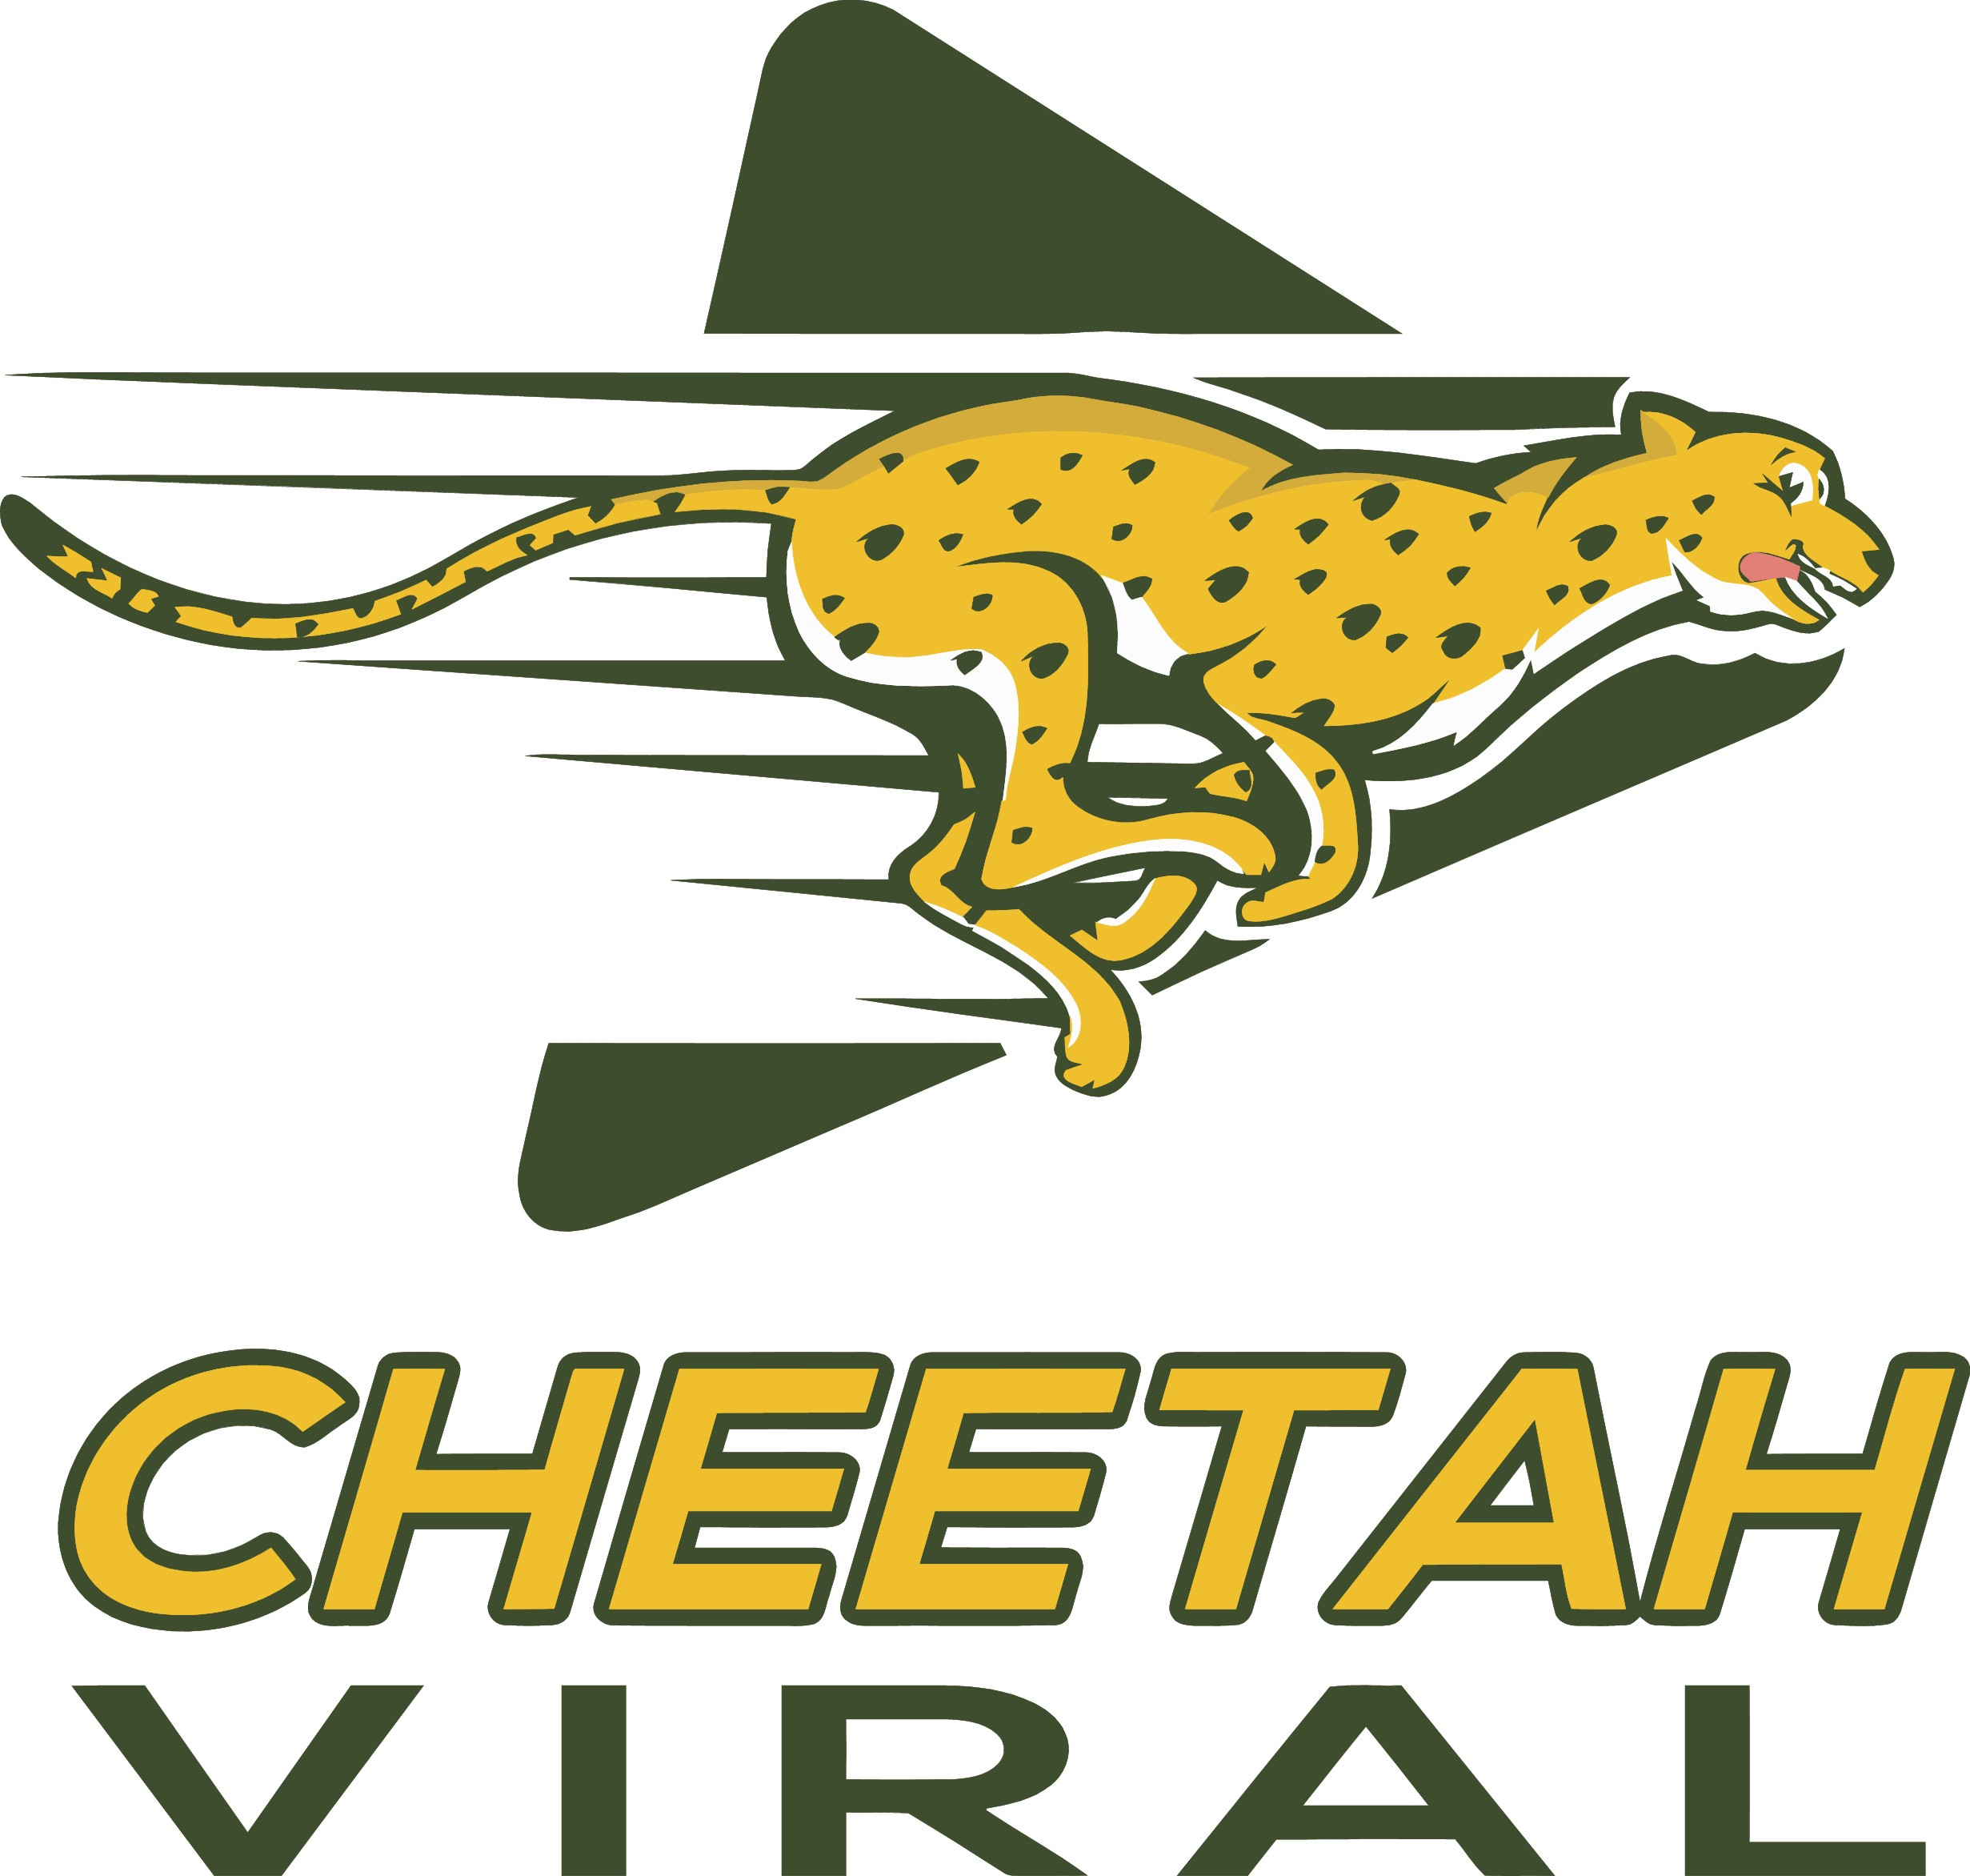 New viral video production company in need of cheetah mascot logo.